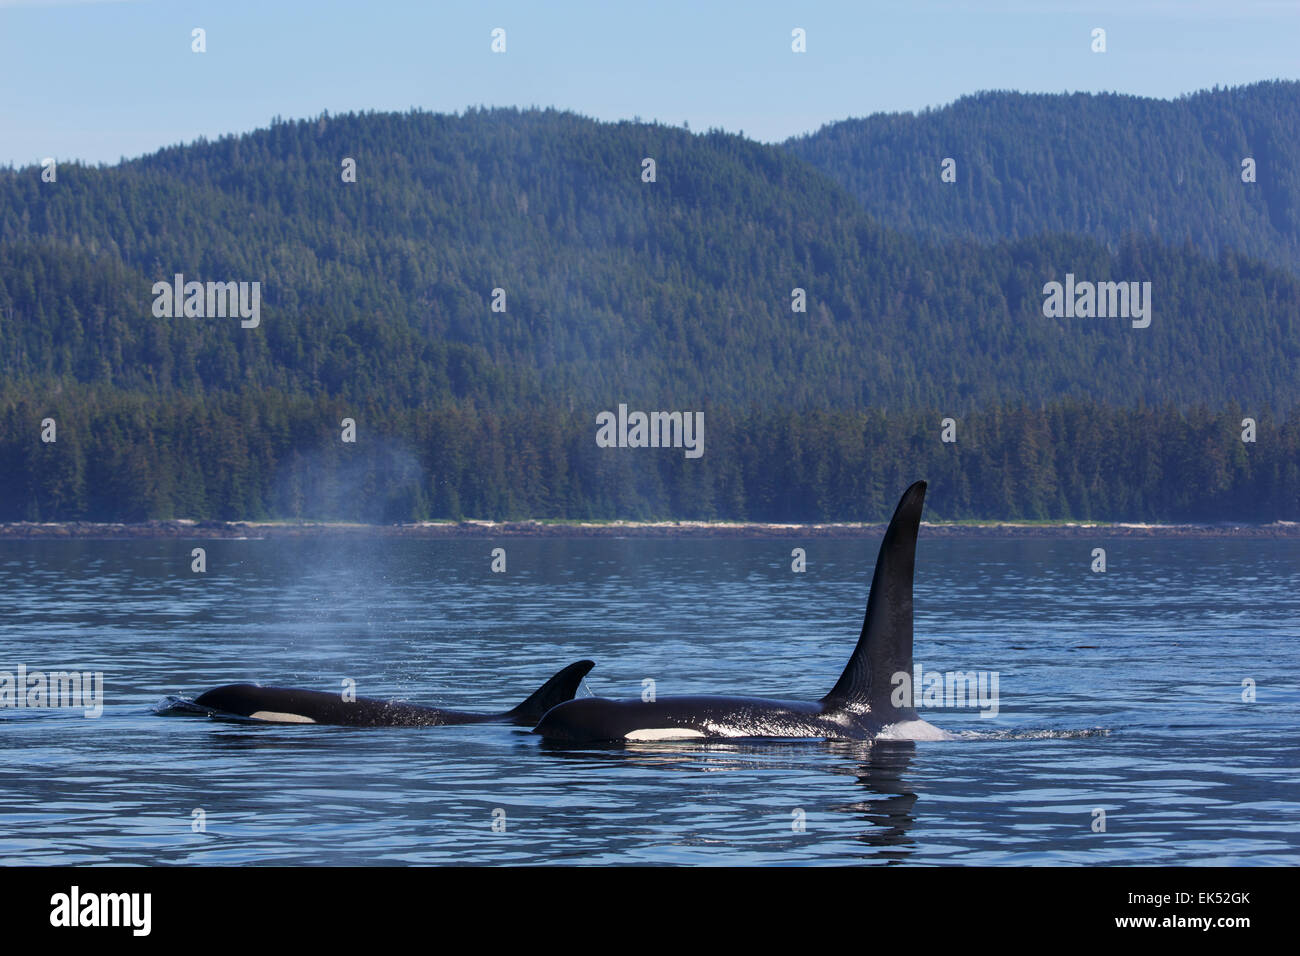 Orcas from the AF5 pod, Frederick Sound, Tongass National Forest, Alaska. - Stock Image